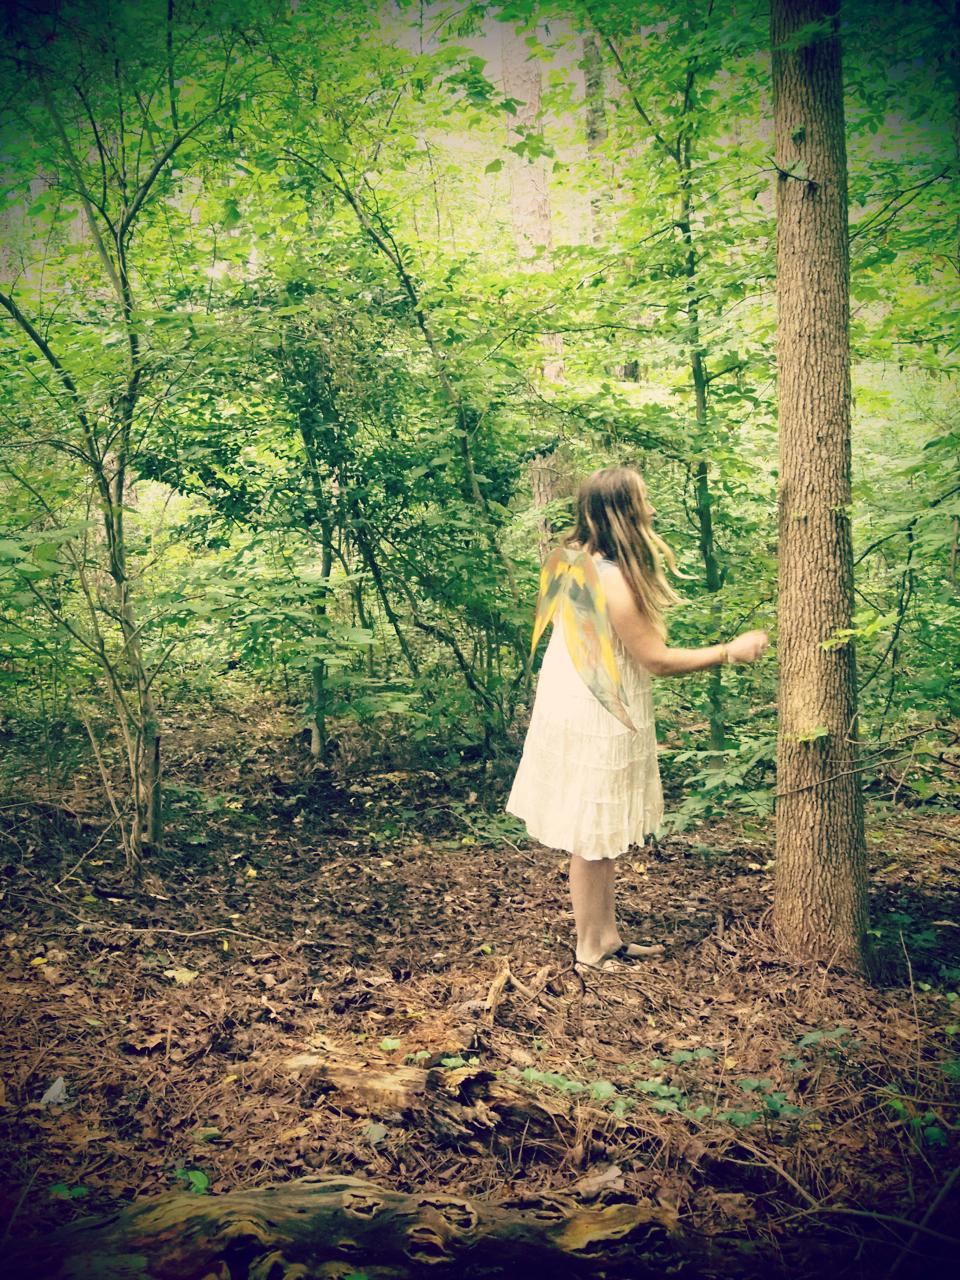 bloggy faerie in woods3.jpg